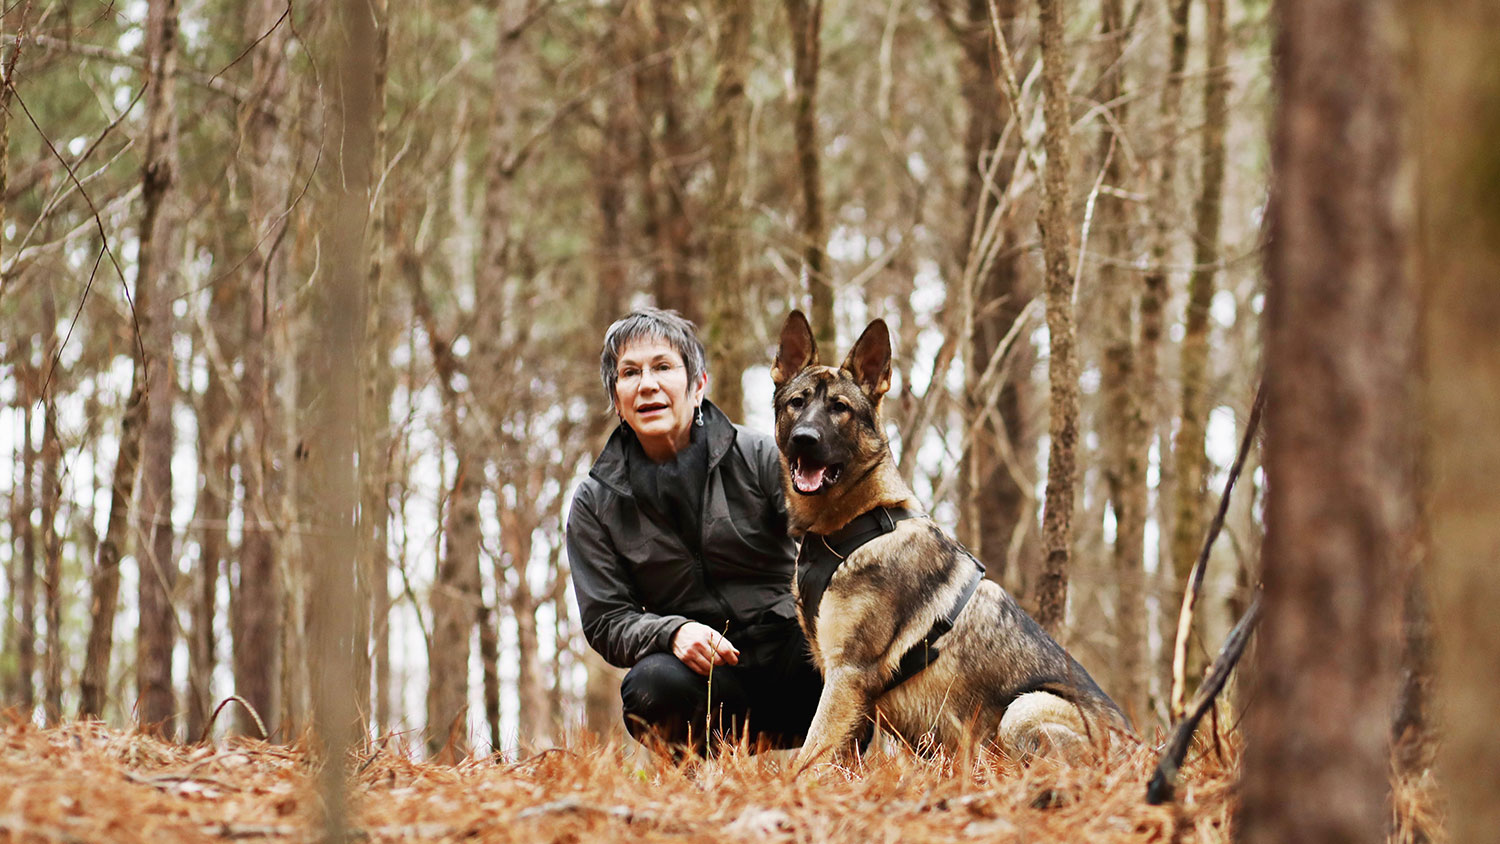 woman crouching down beside a seated German shepherd dog in the woods